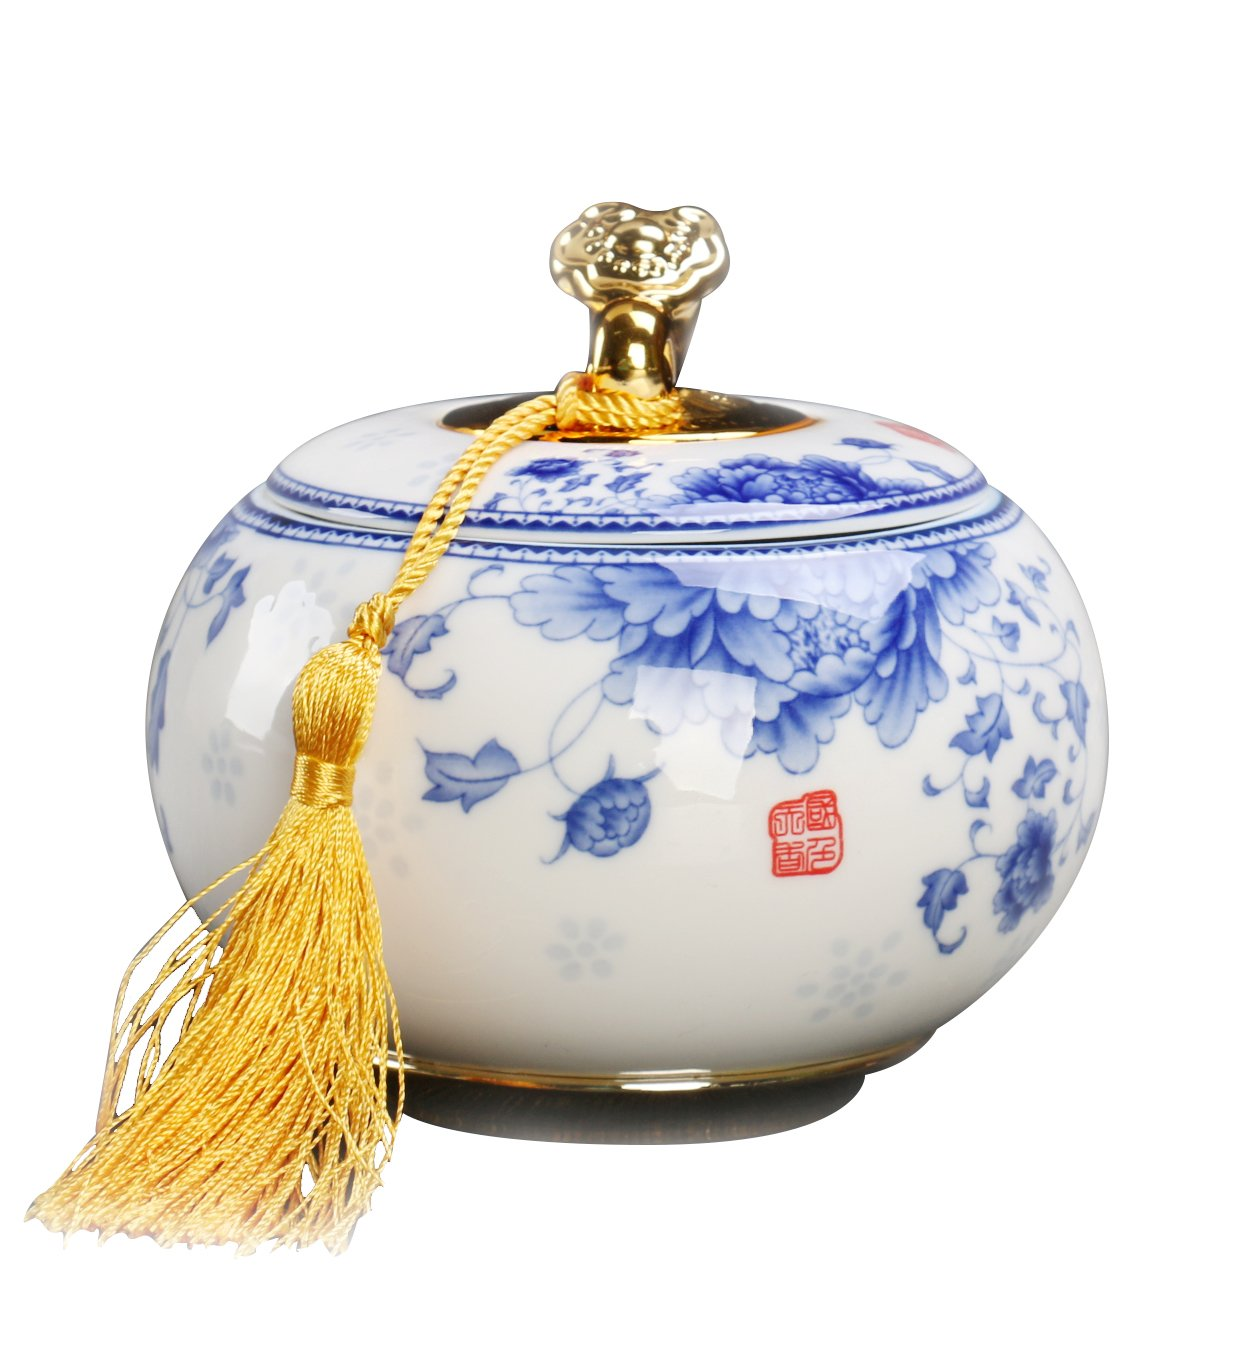 JKCOM Chinese Style Ceramics Tea Container, Tea Caddy, Porcelain Tea Storage Jar Smooth Surface